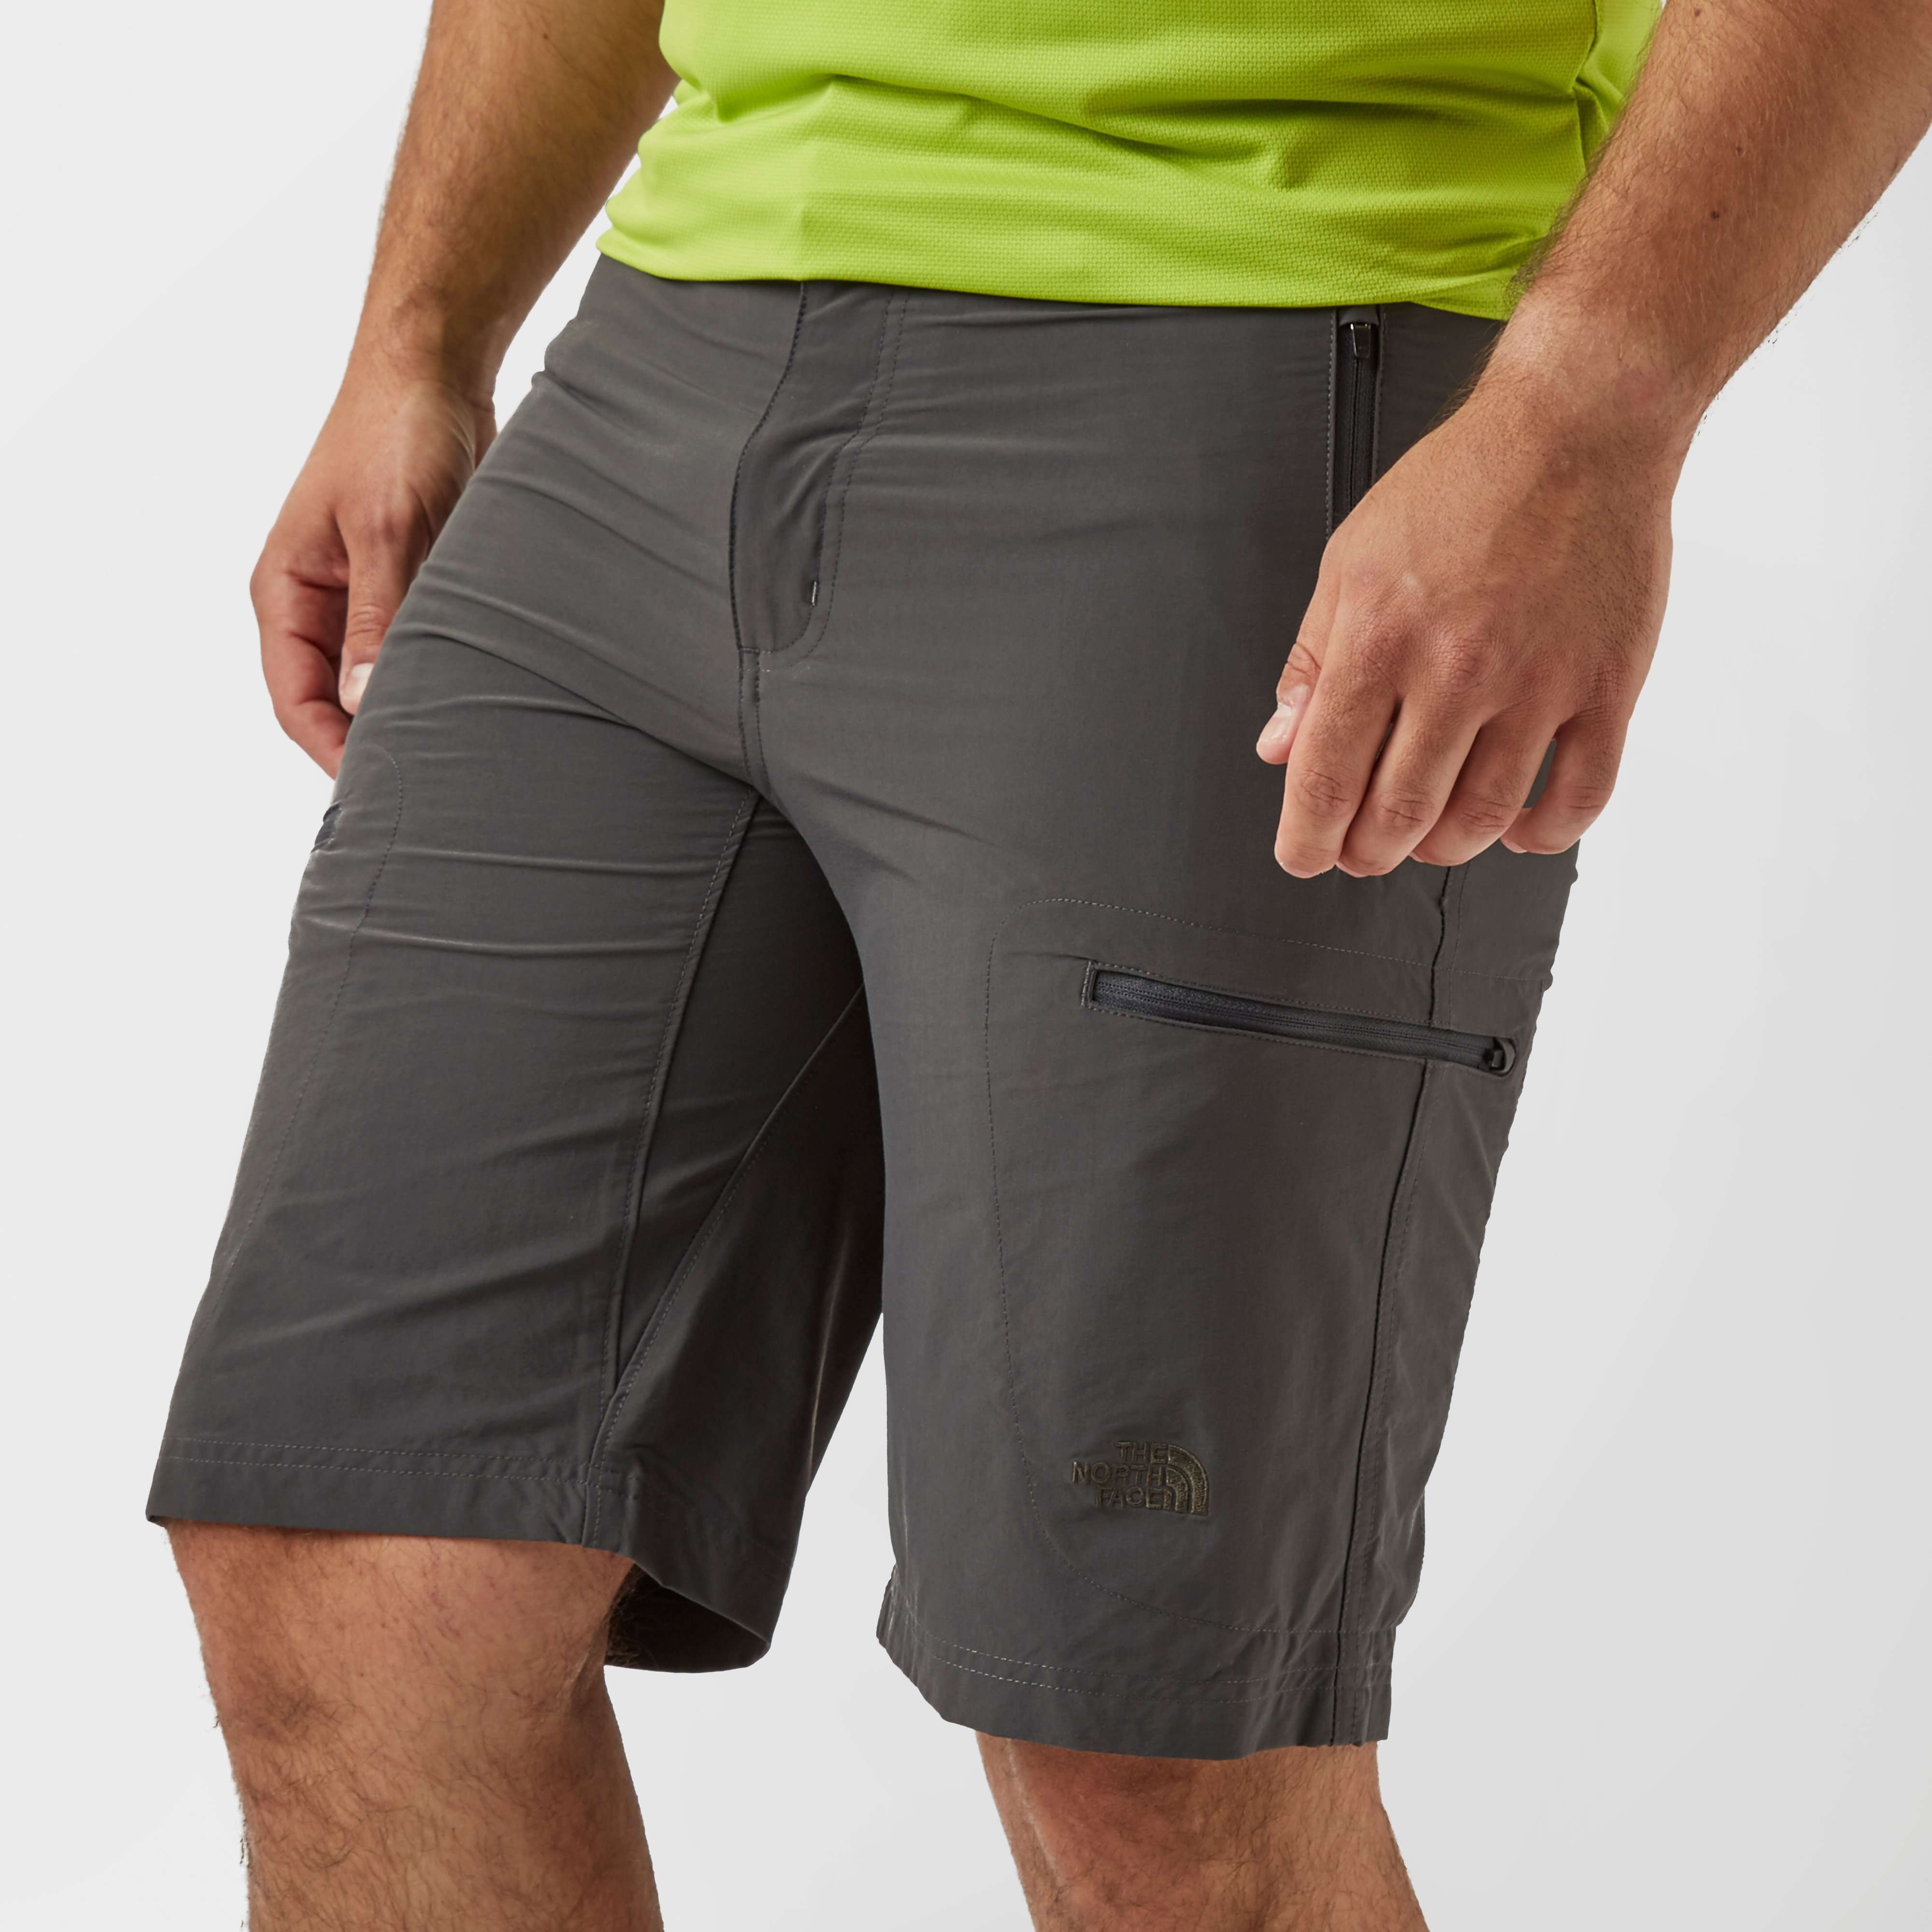 THE NORTH FACE Men's Exploration Hiking Shorts